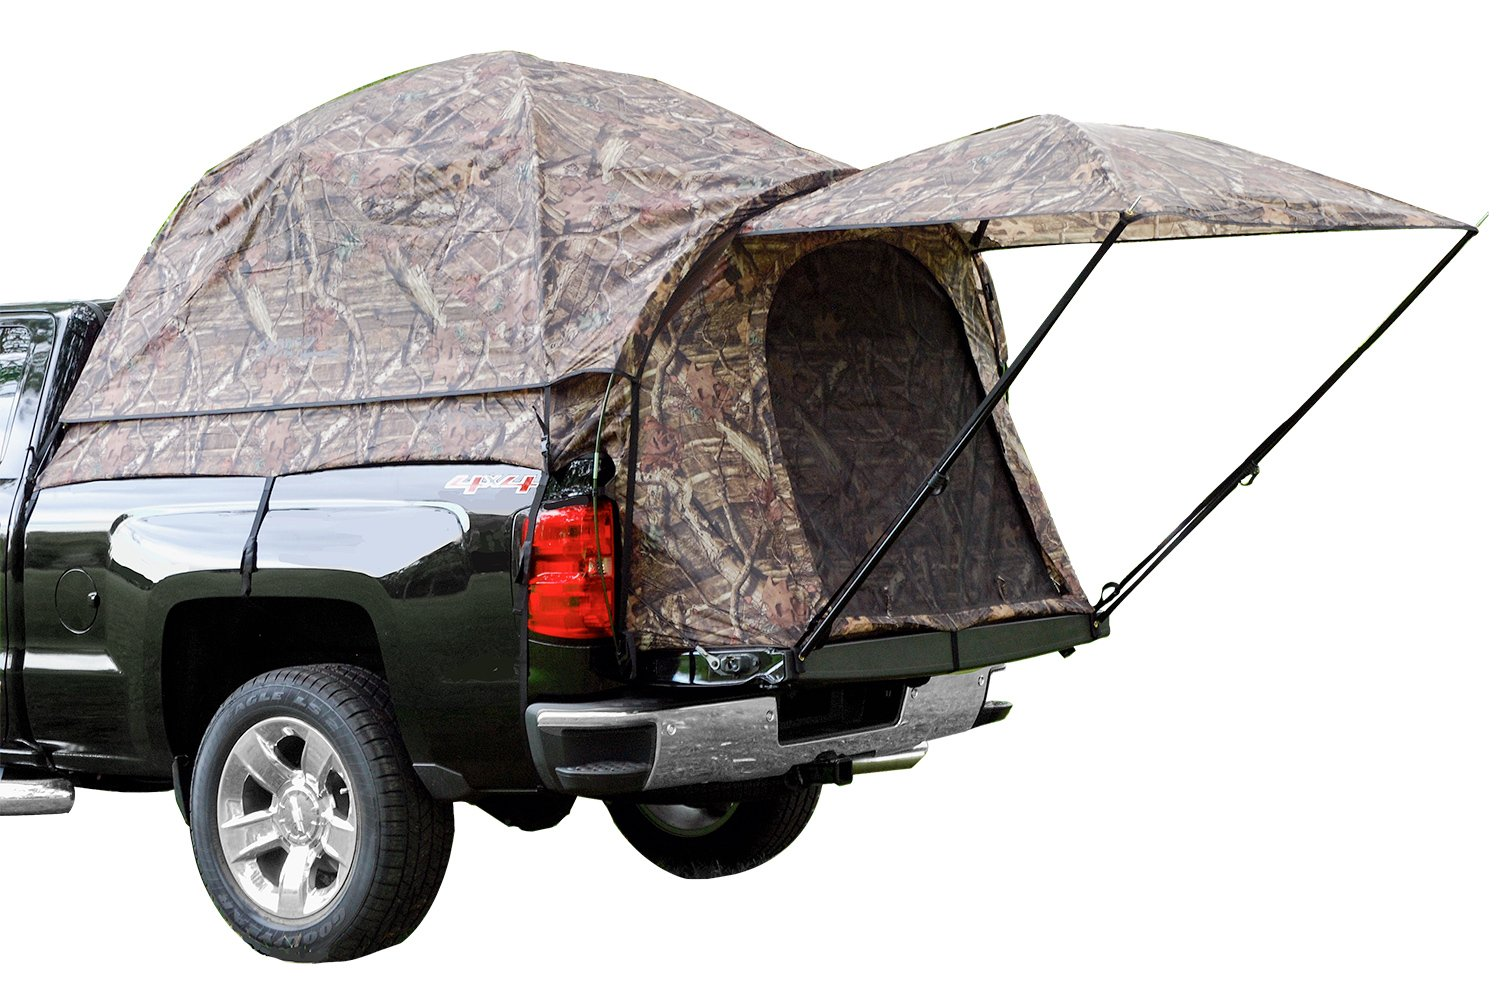 Toyota Tundra Sportz Camo Truck Tent  sc 1 st  Auto Accessories Garage & Toyota Tundra Tent Tundra Truck Camping Tents - 1999 - 2018